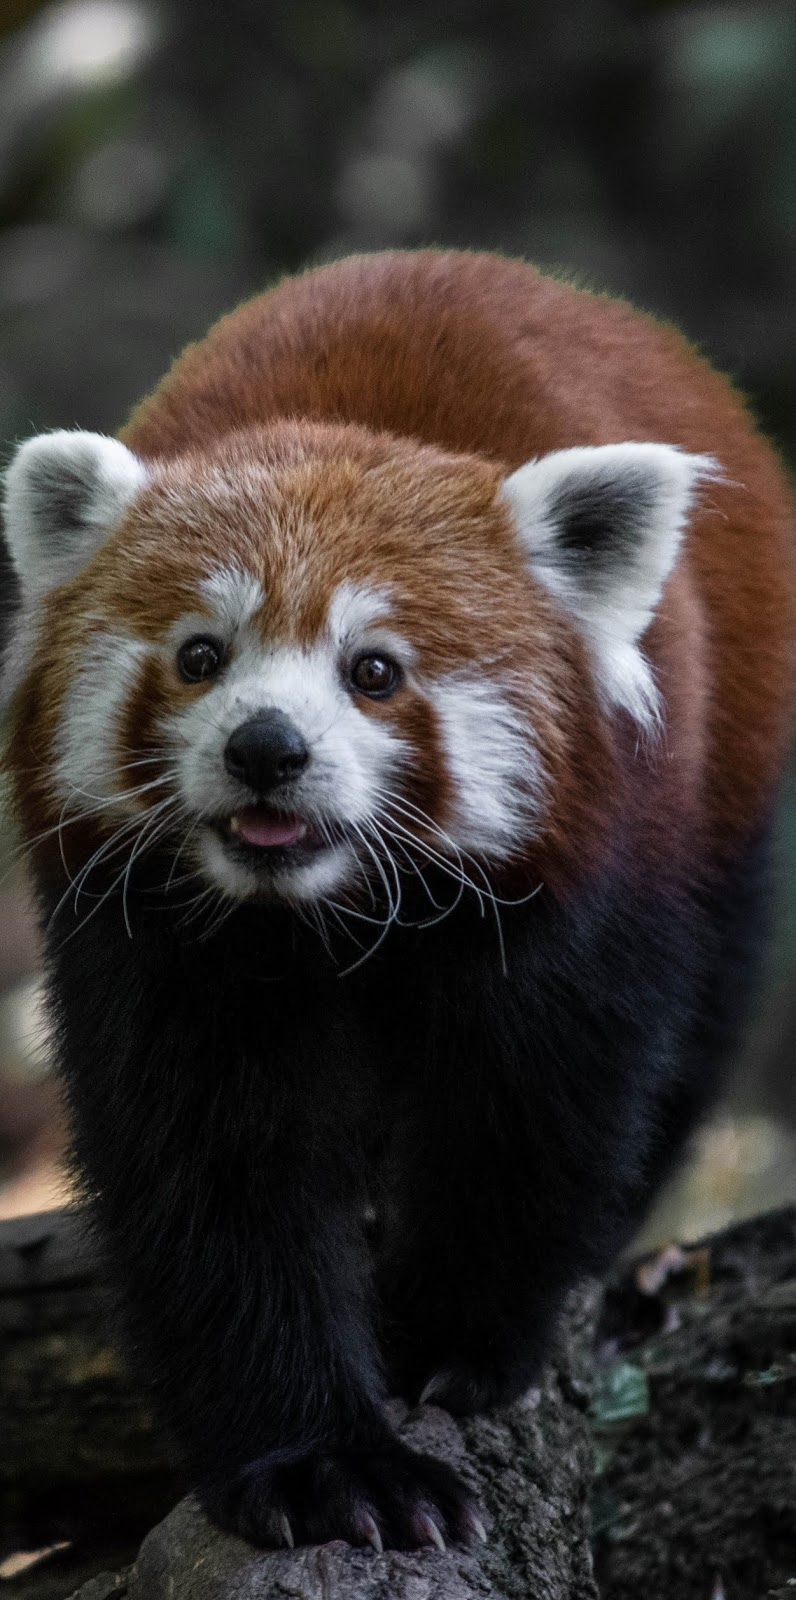 Picture of a cute red panda.